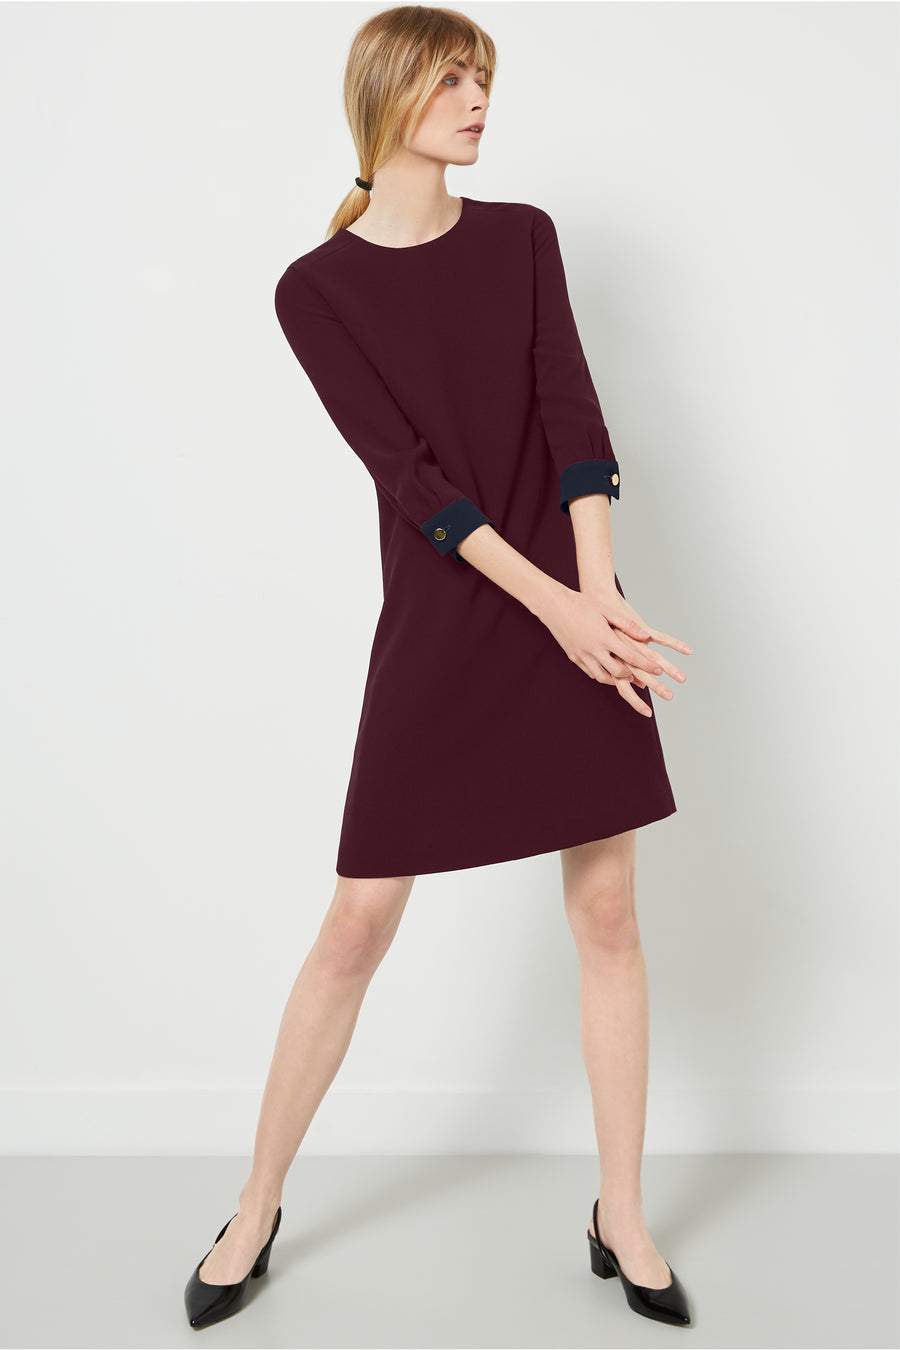 Falmouth Aubergine and Navy Dress